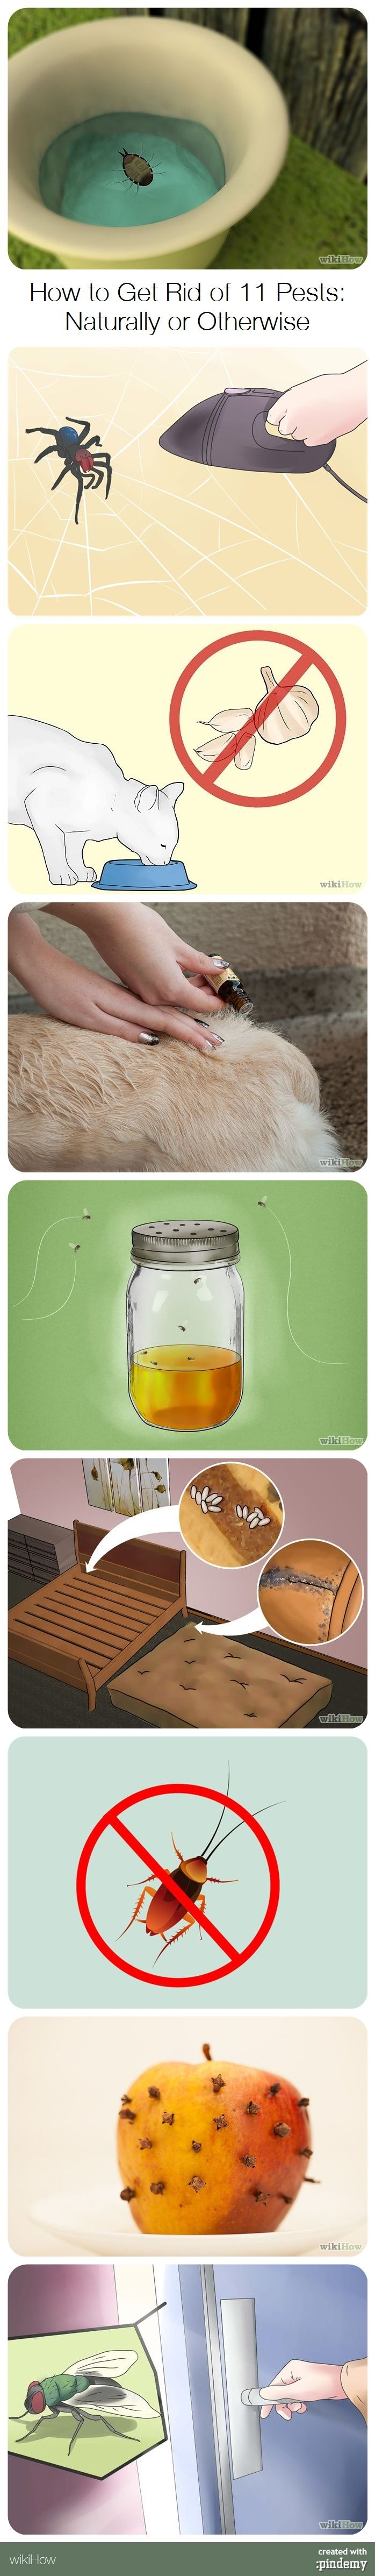 How to Get Rid of 11 Pests Naturally or Otherwise (Stink